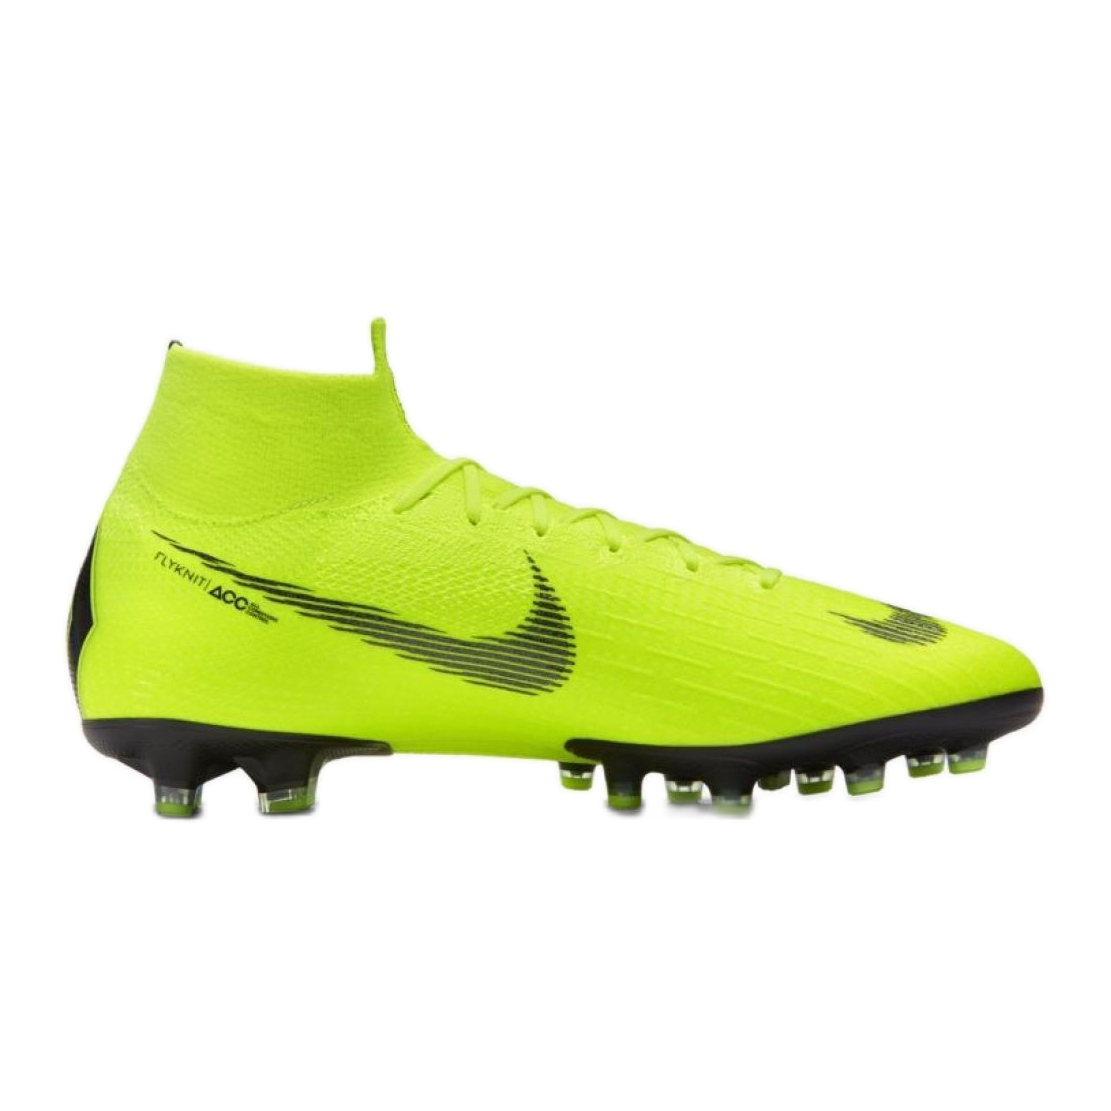 half off 24075 317d7 Nike Mercurial Superfly 6 Elite Ag Pro M AH7377-701 Football Boots